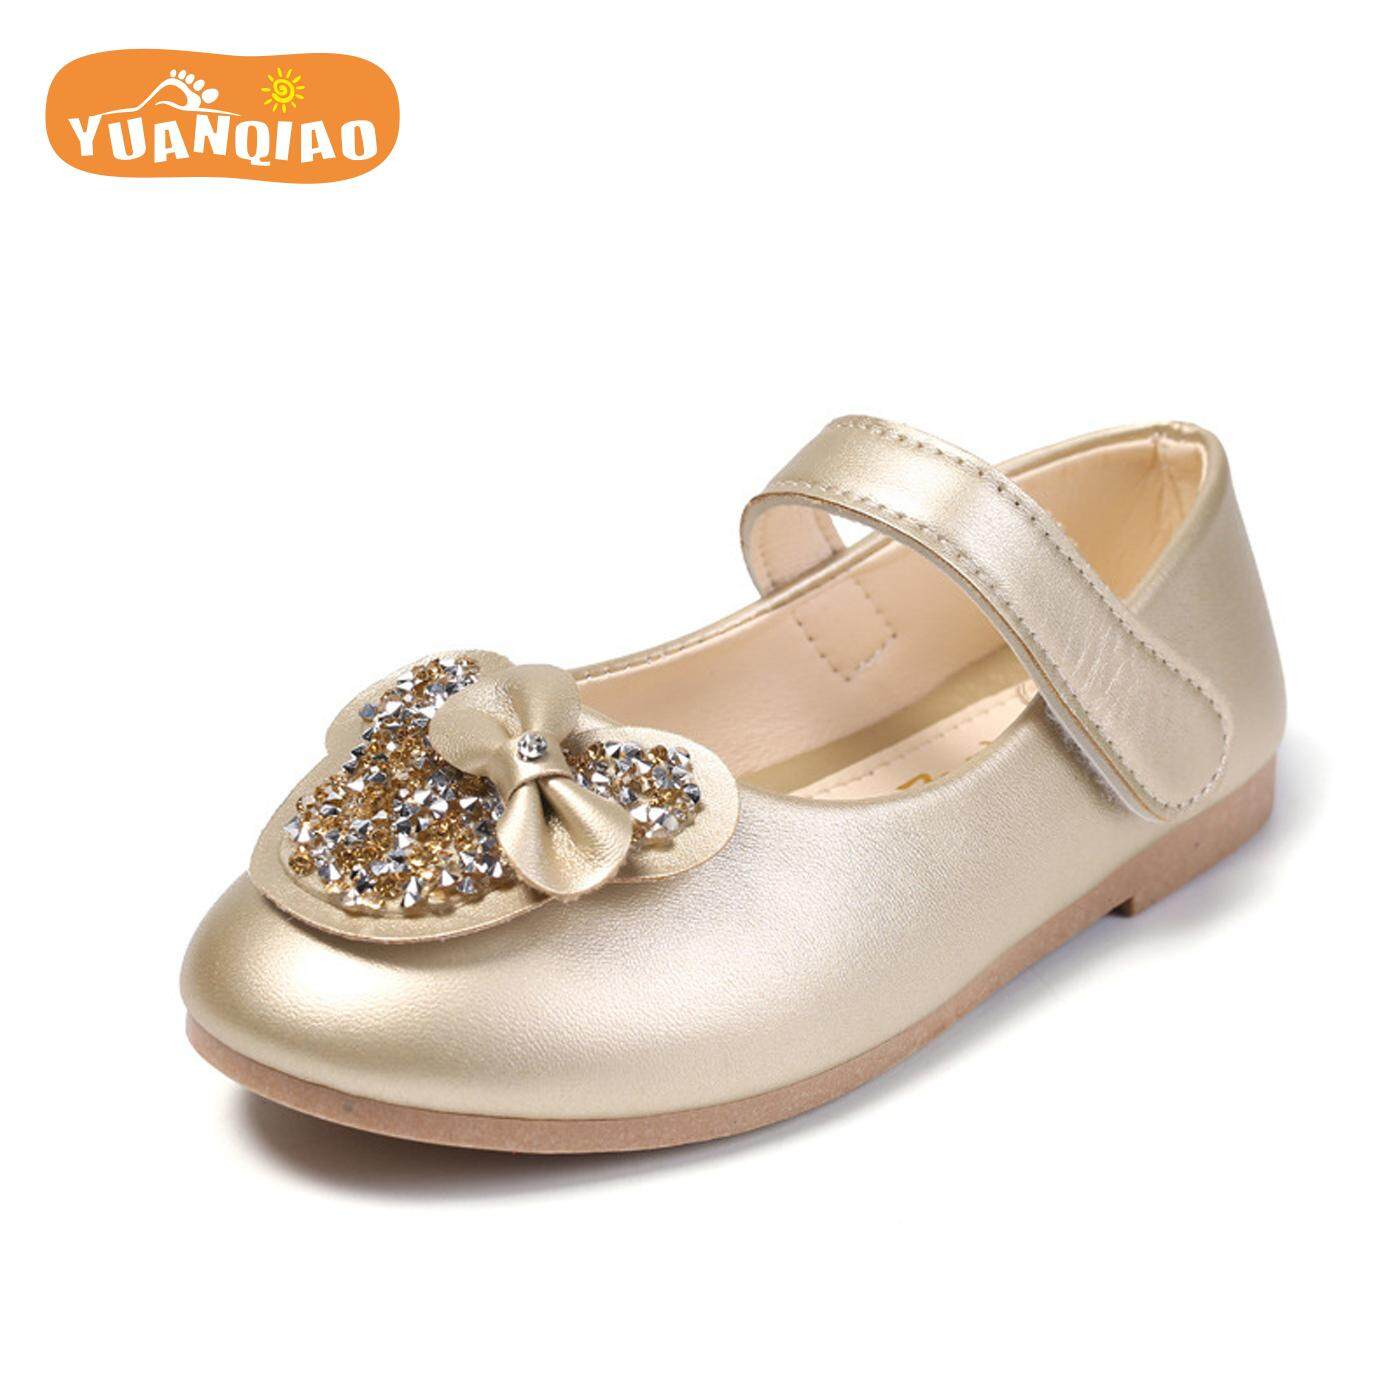 75ae37ce964c YUANQIAO Girls Leather Shoes Lovely Princess Shoes Girls Sandals Children  Shoes Kids Sandals 2 3 4